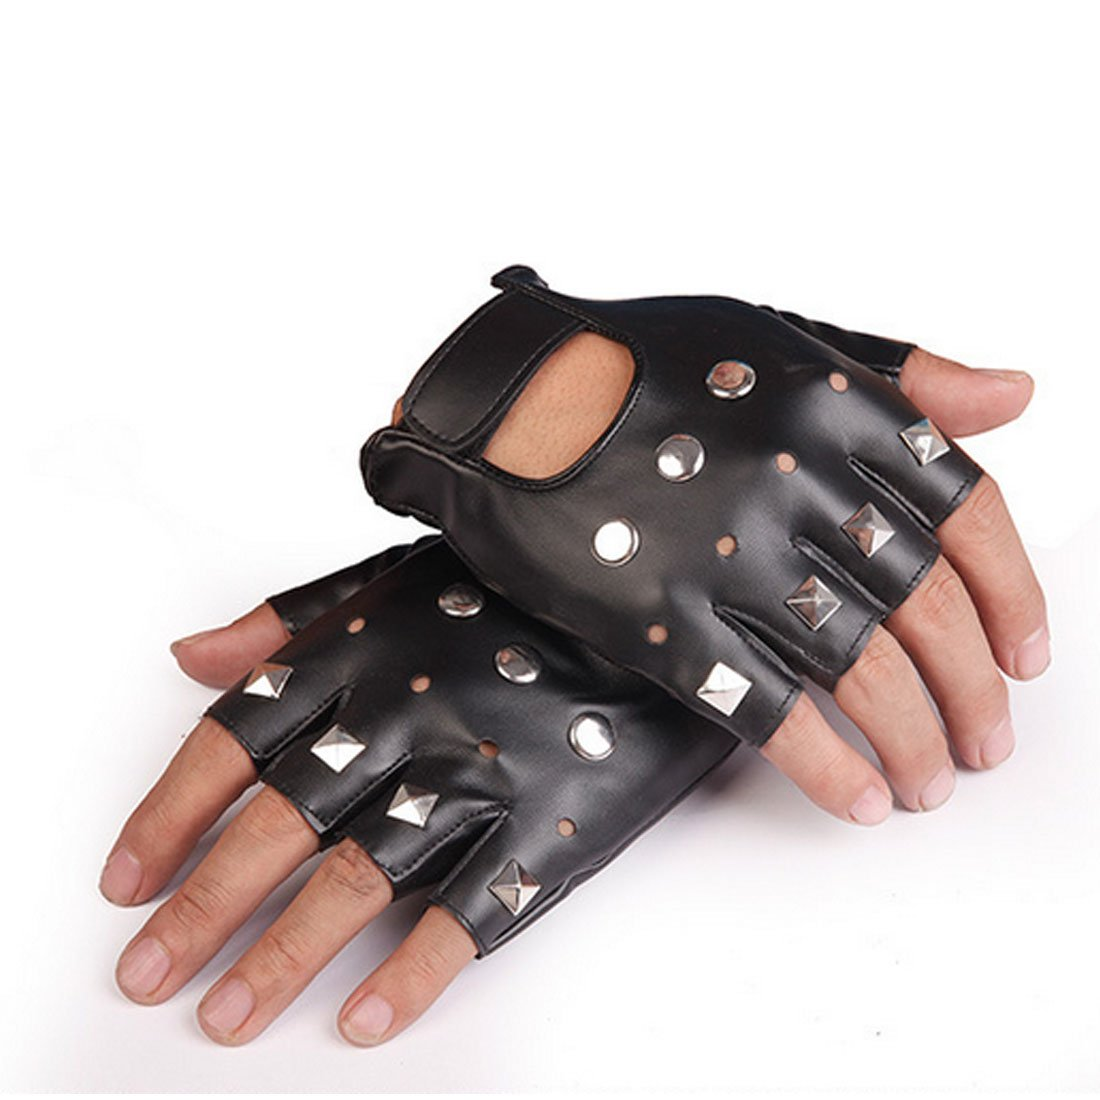 Yingniao PU Leather Fingerless Stud Metal Motorcycle Gloves Rock Gothic Punk Style NY6061704